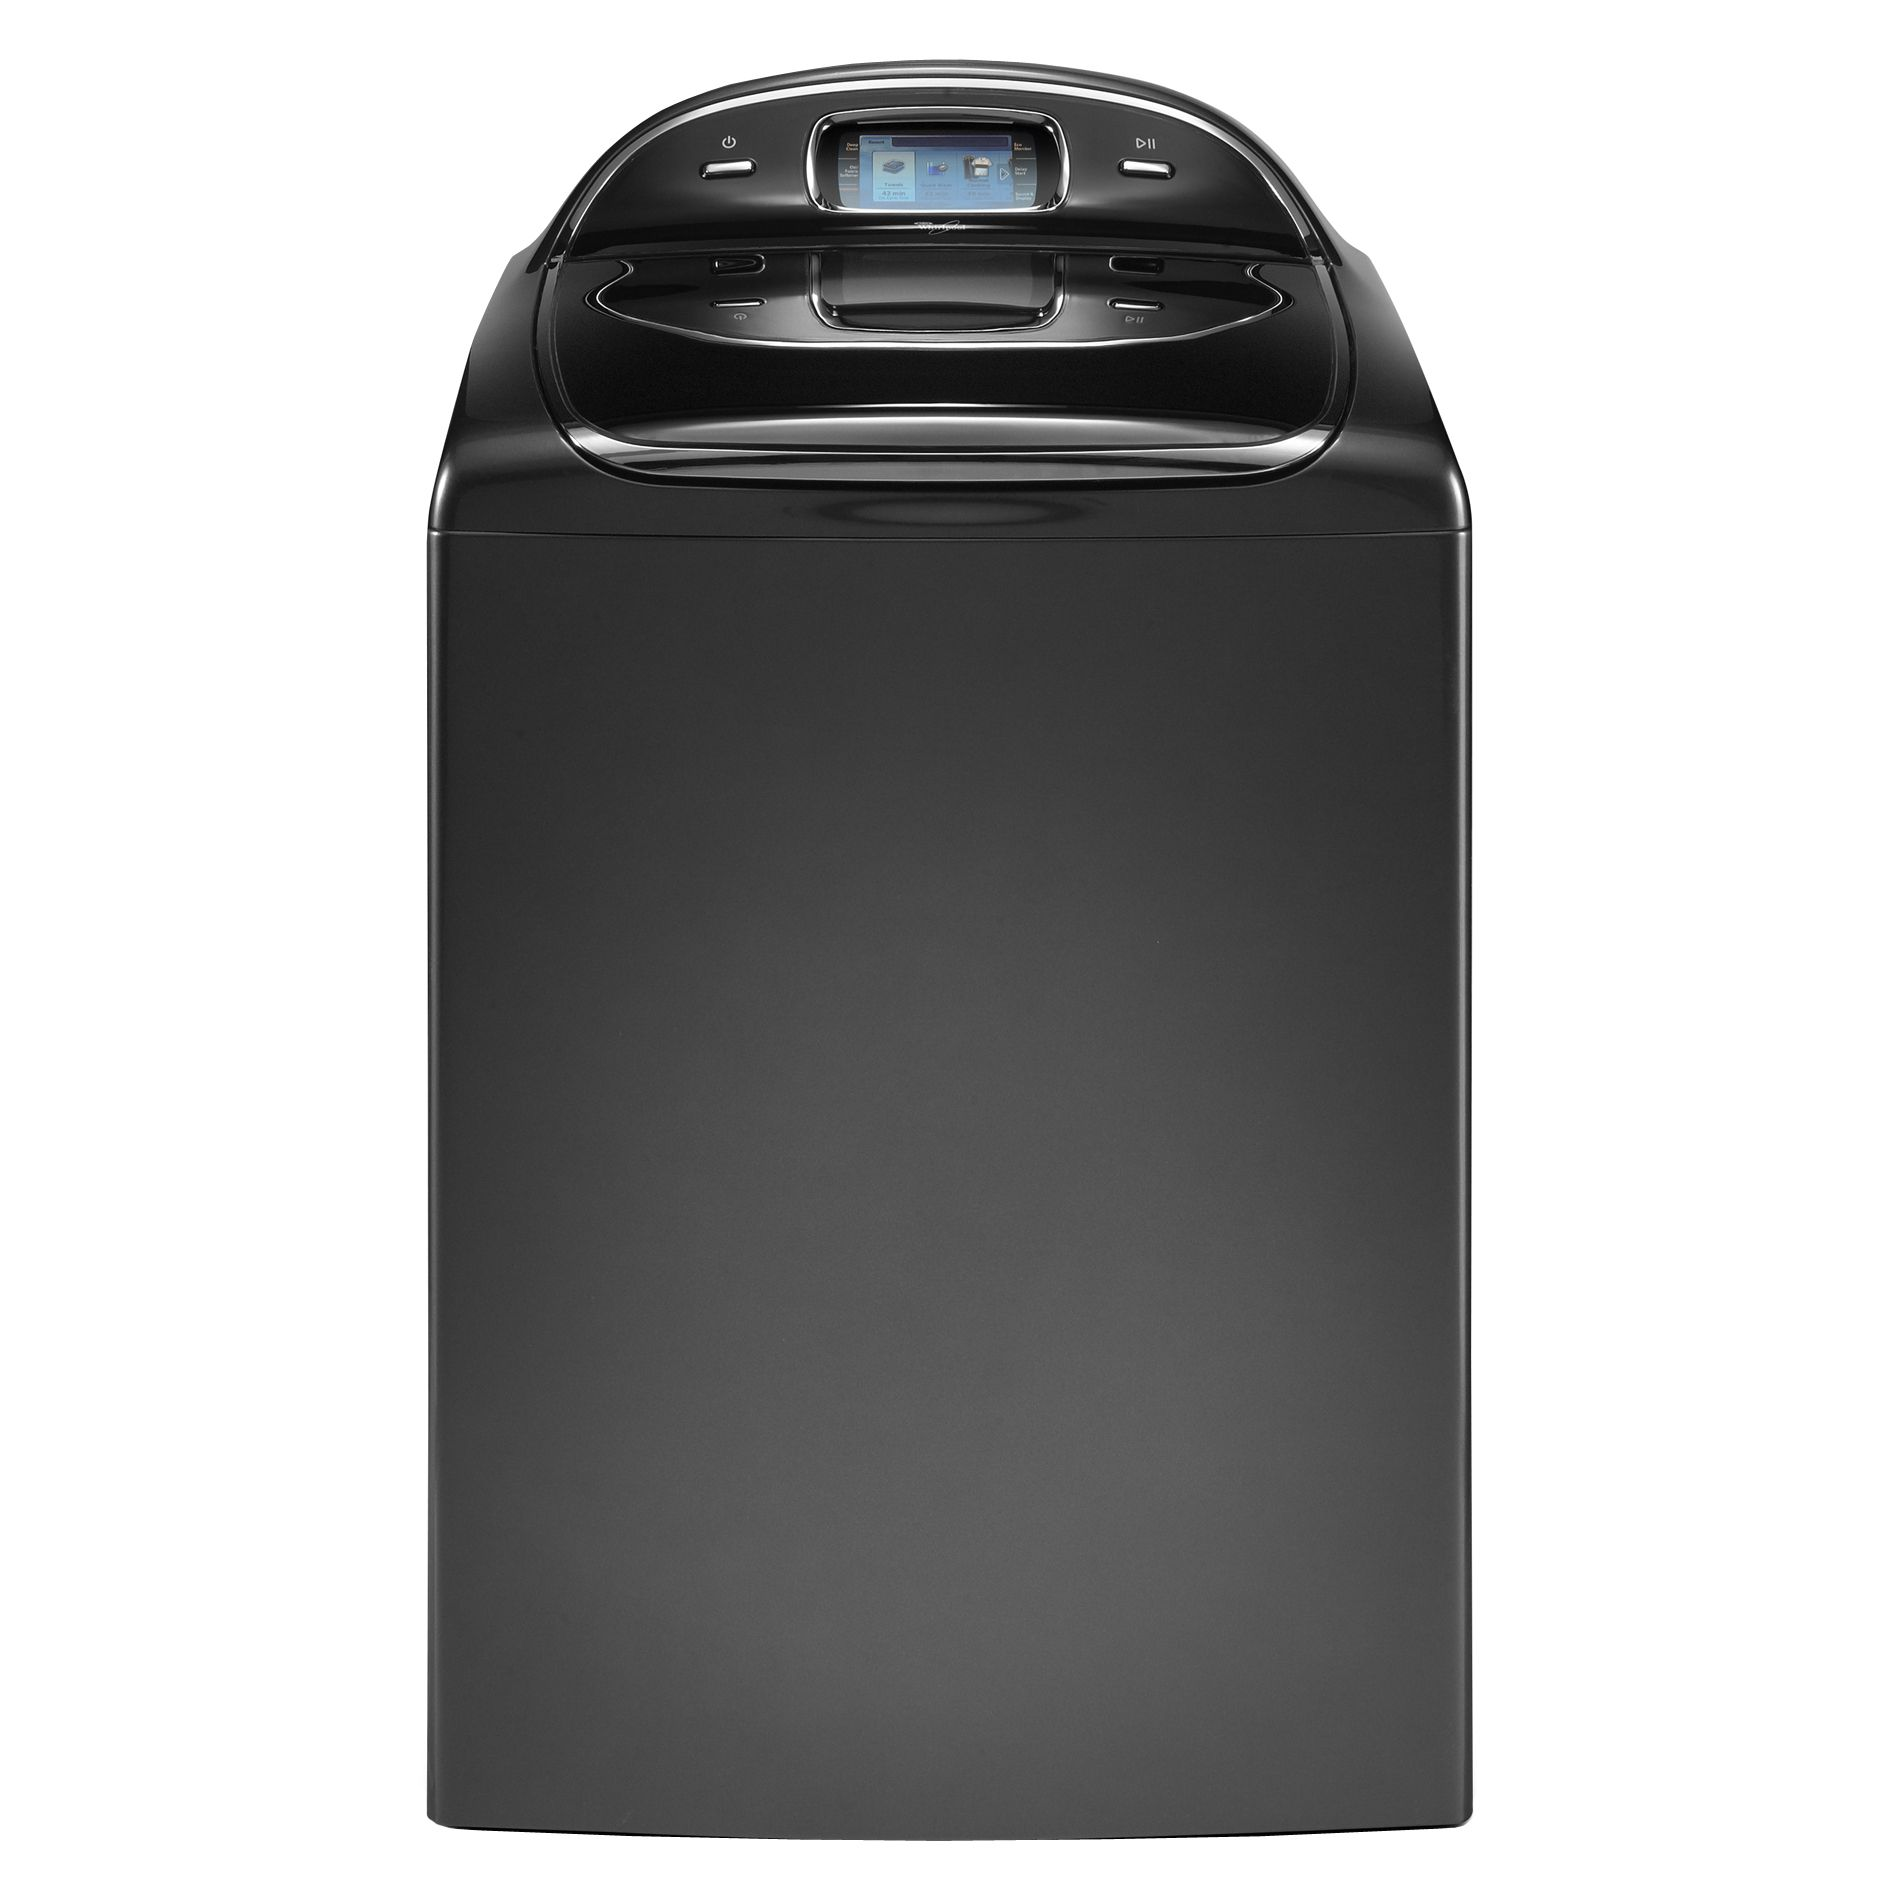 Whirlpool 4.0 cubic foot Top-Load Washing High-Efficiency Machine